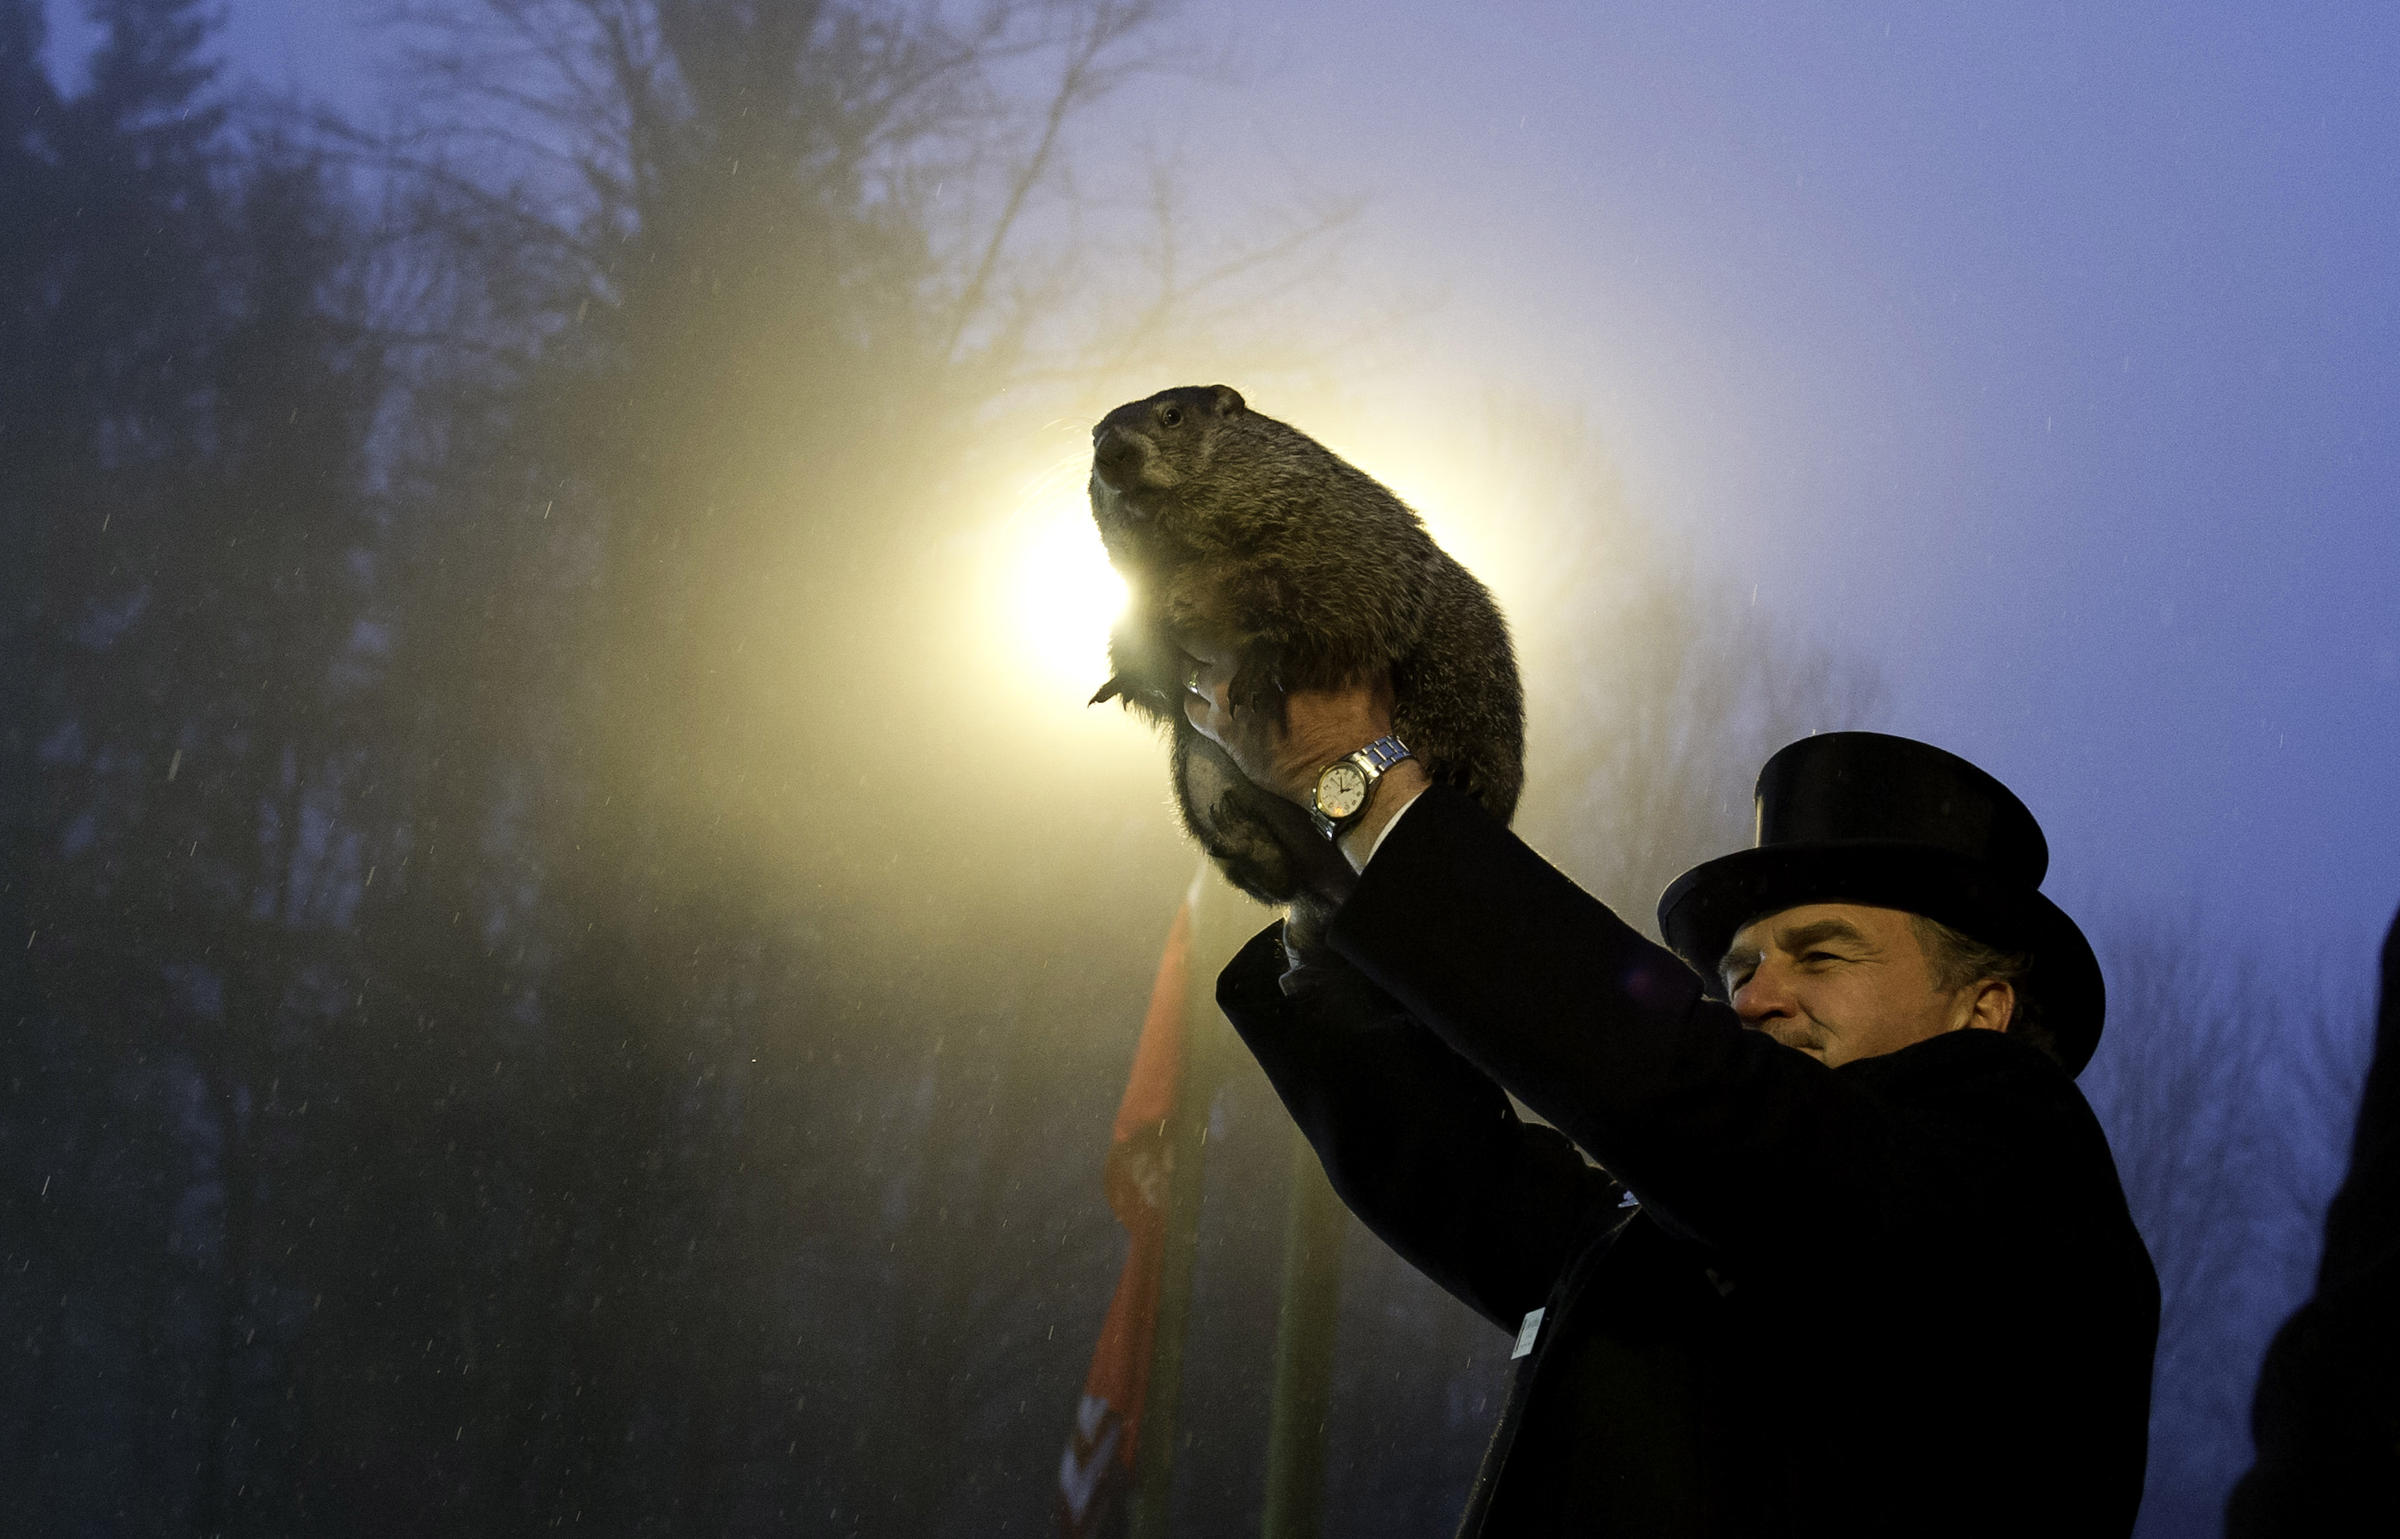 essay groundhog day wuwm groundhog handler john griffiths holds punxsutawney phil during the annual groundhog day festivities